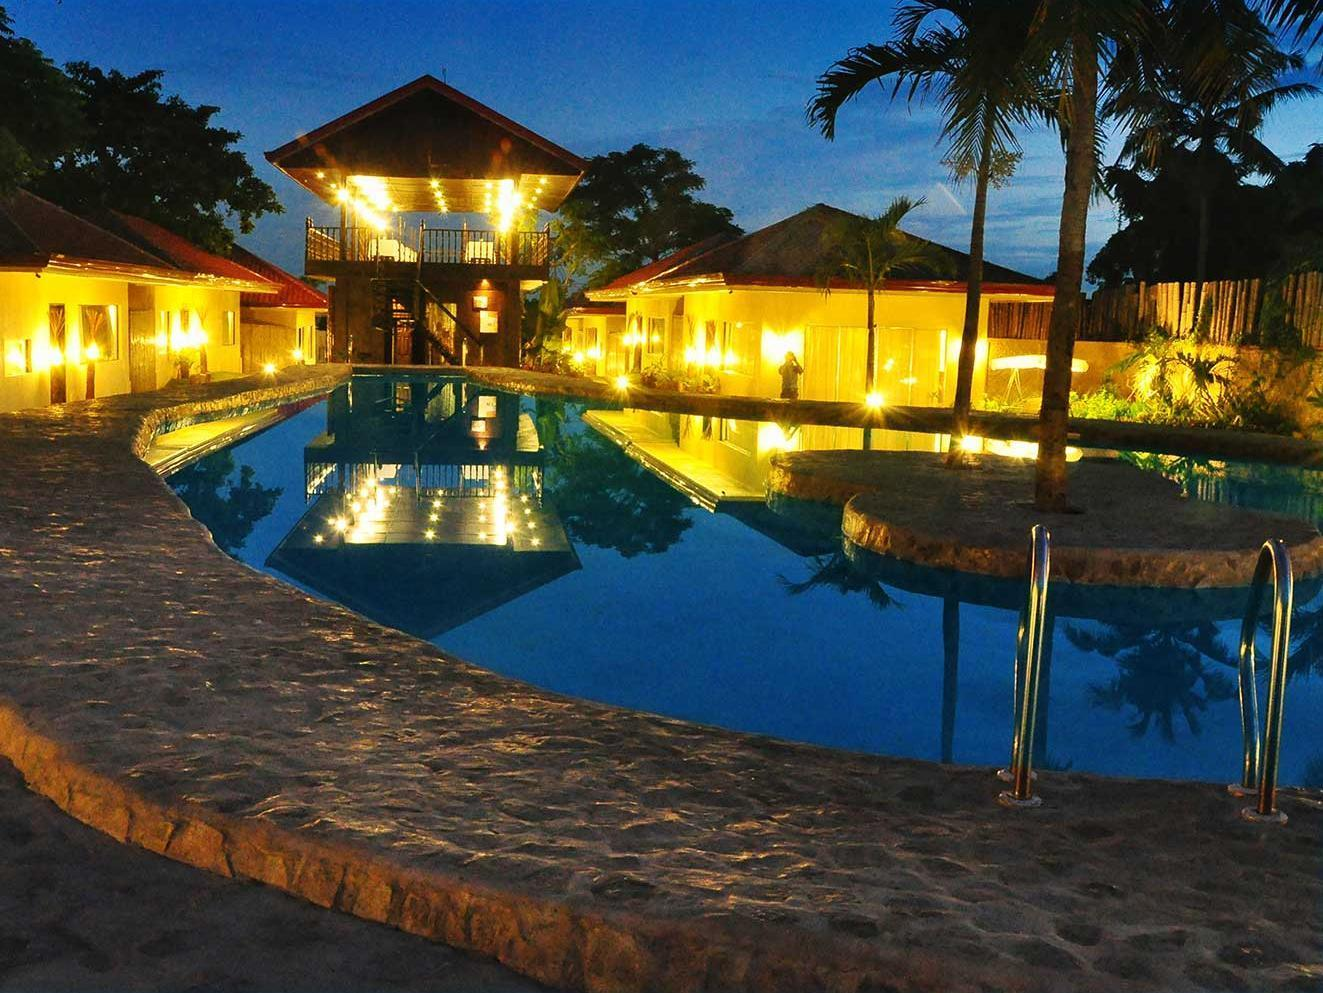 Agila Pool Villas Resort Cebu-stad - Suite